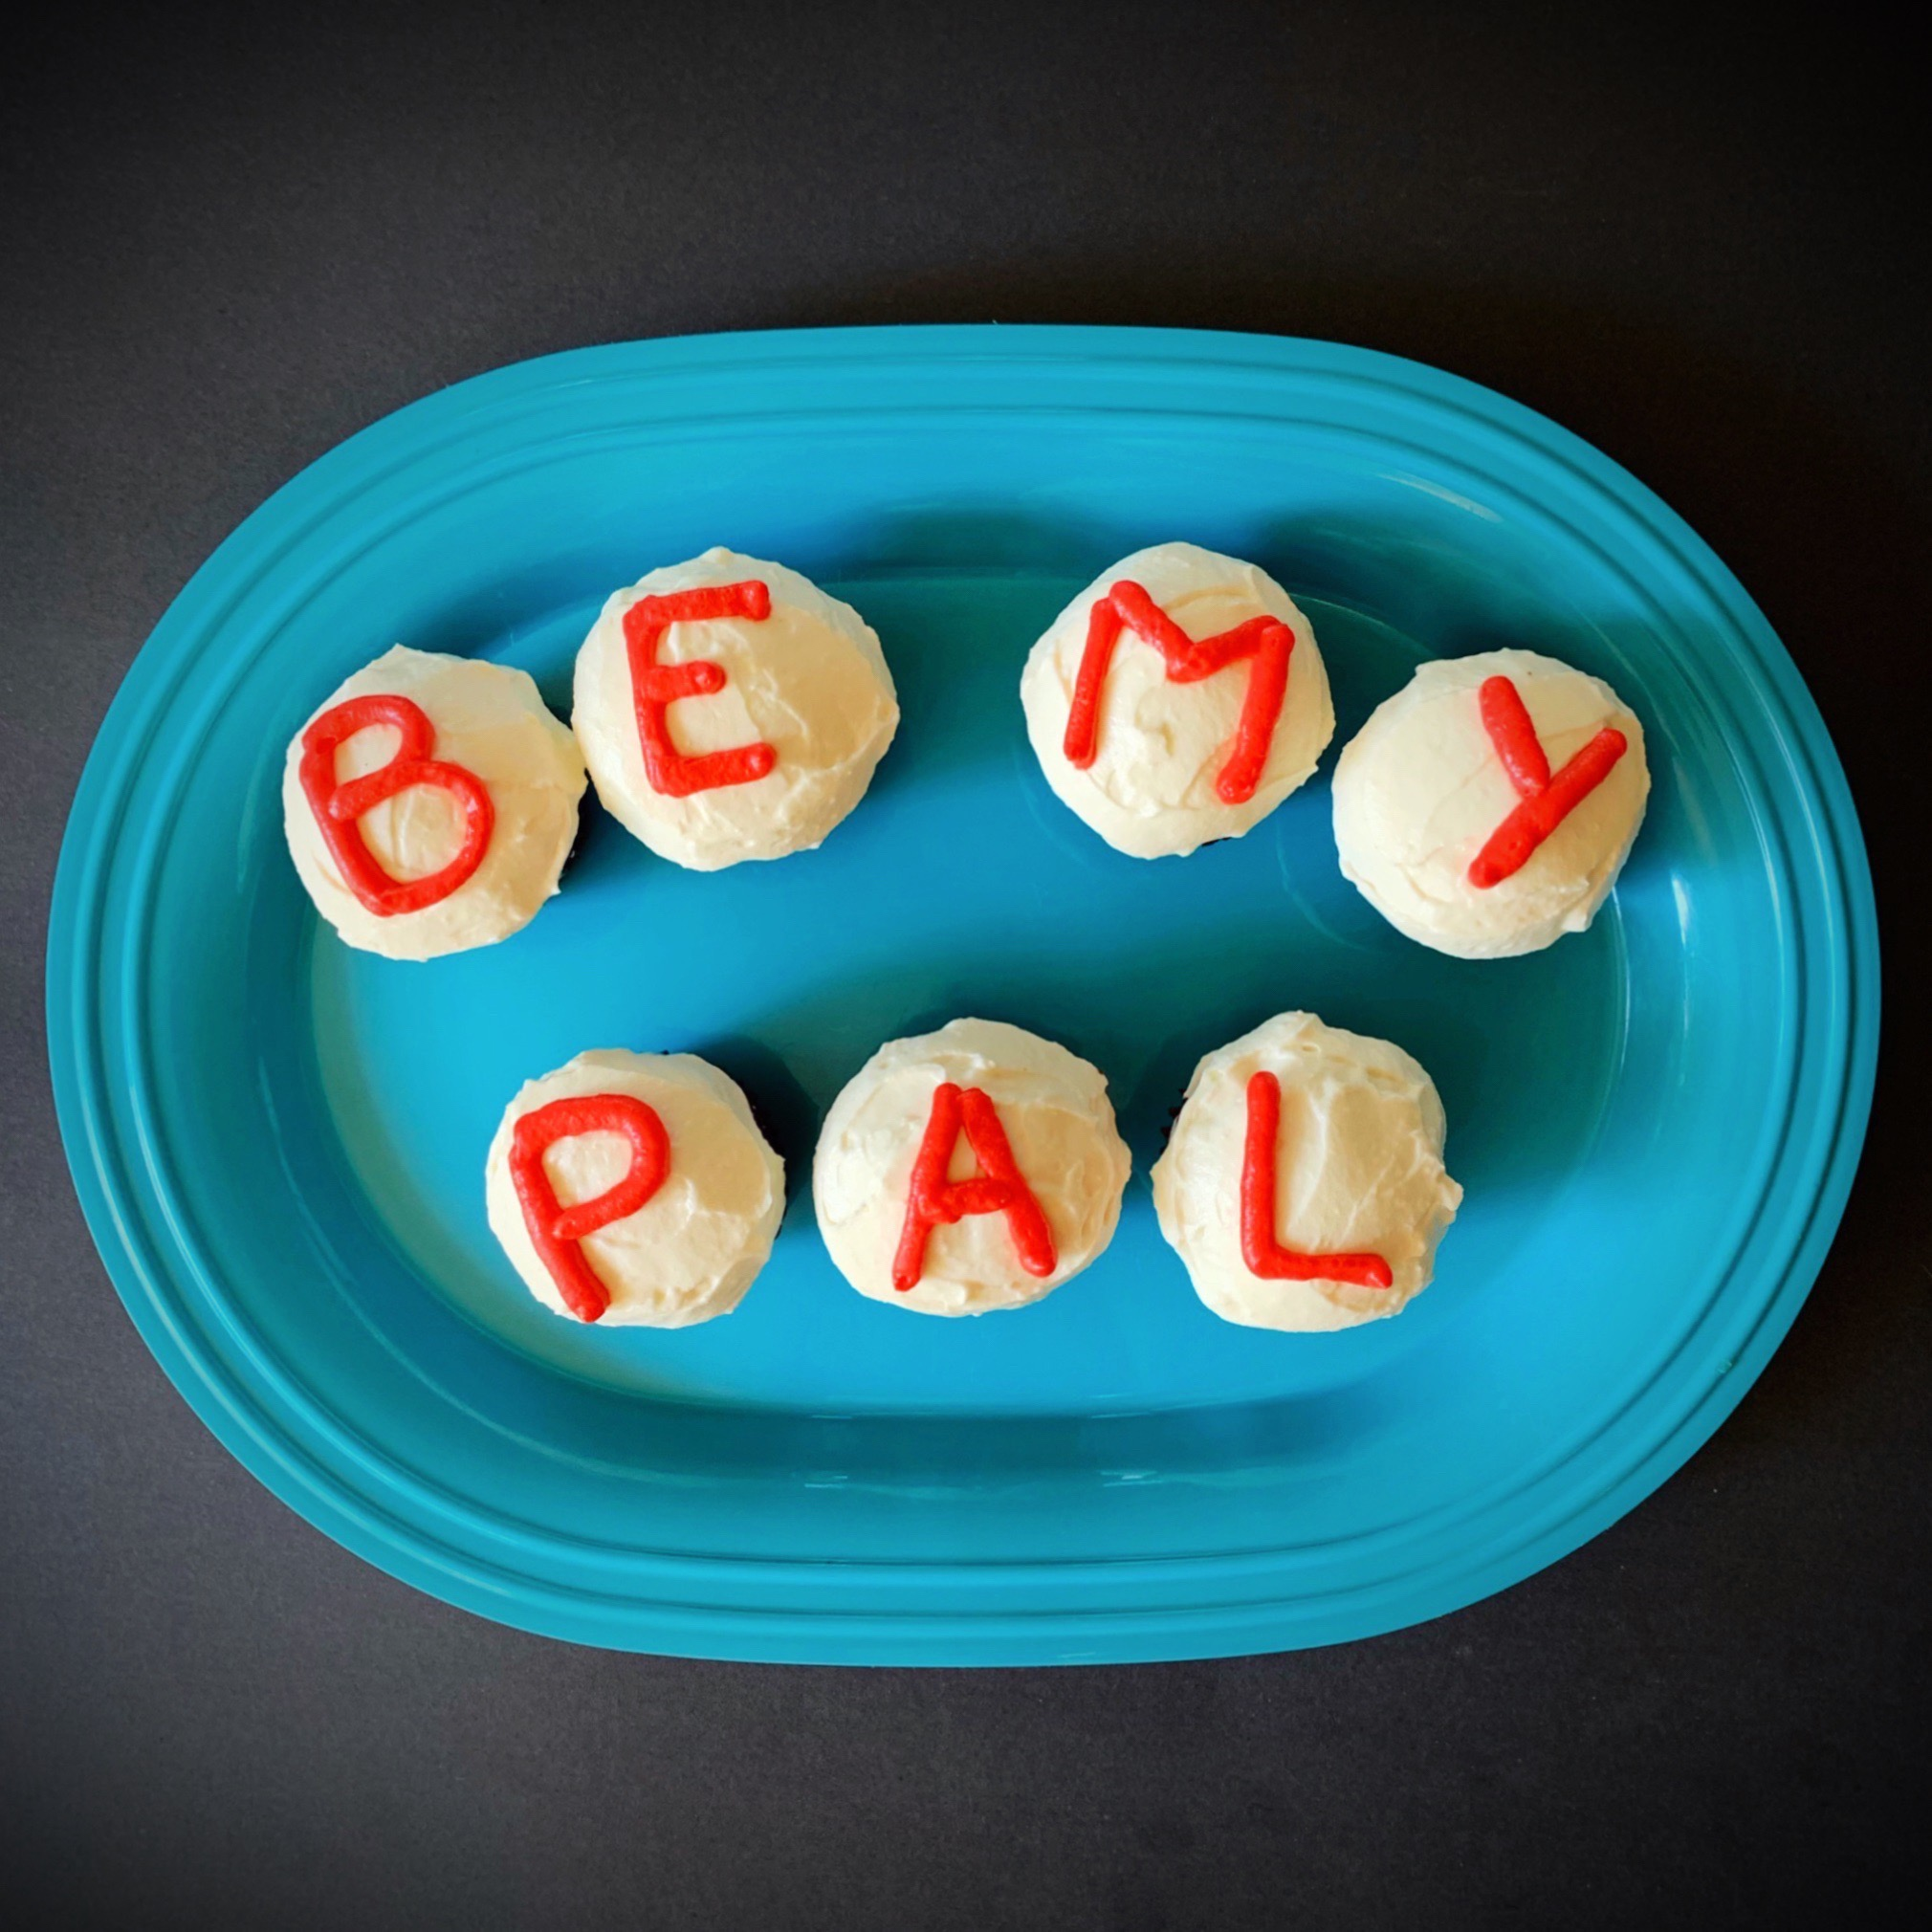 Be My Pal Cupcake Recipe from Disney and Pixar's Monster's University